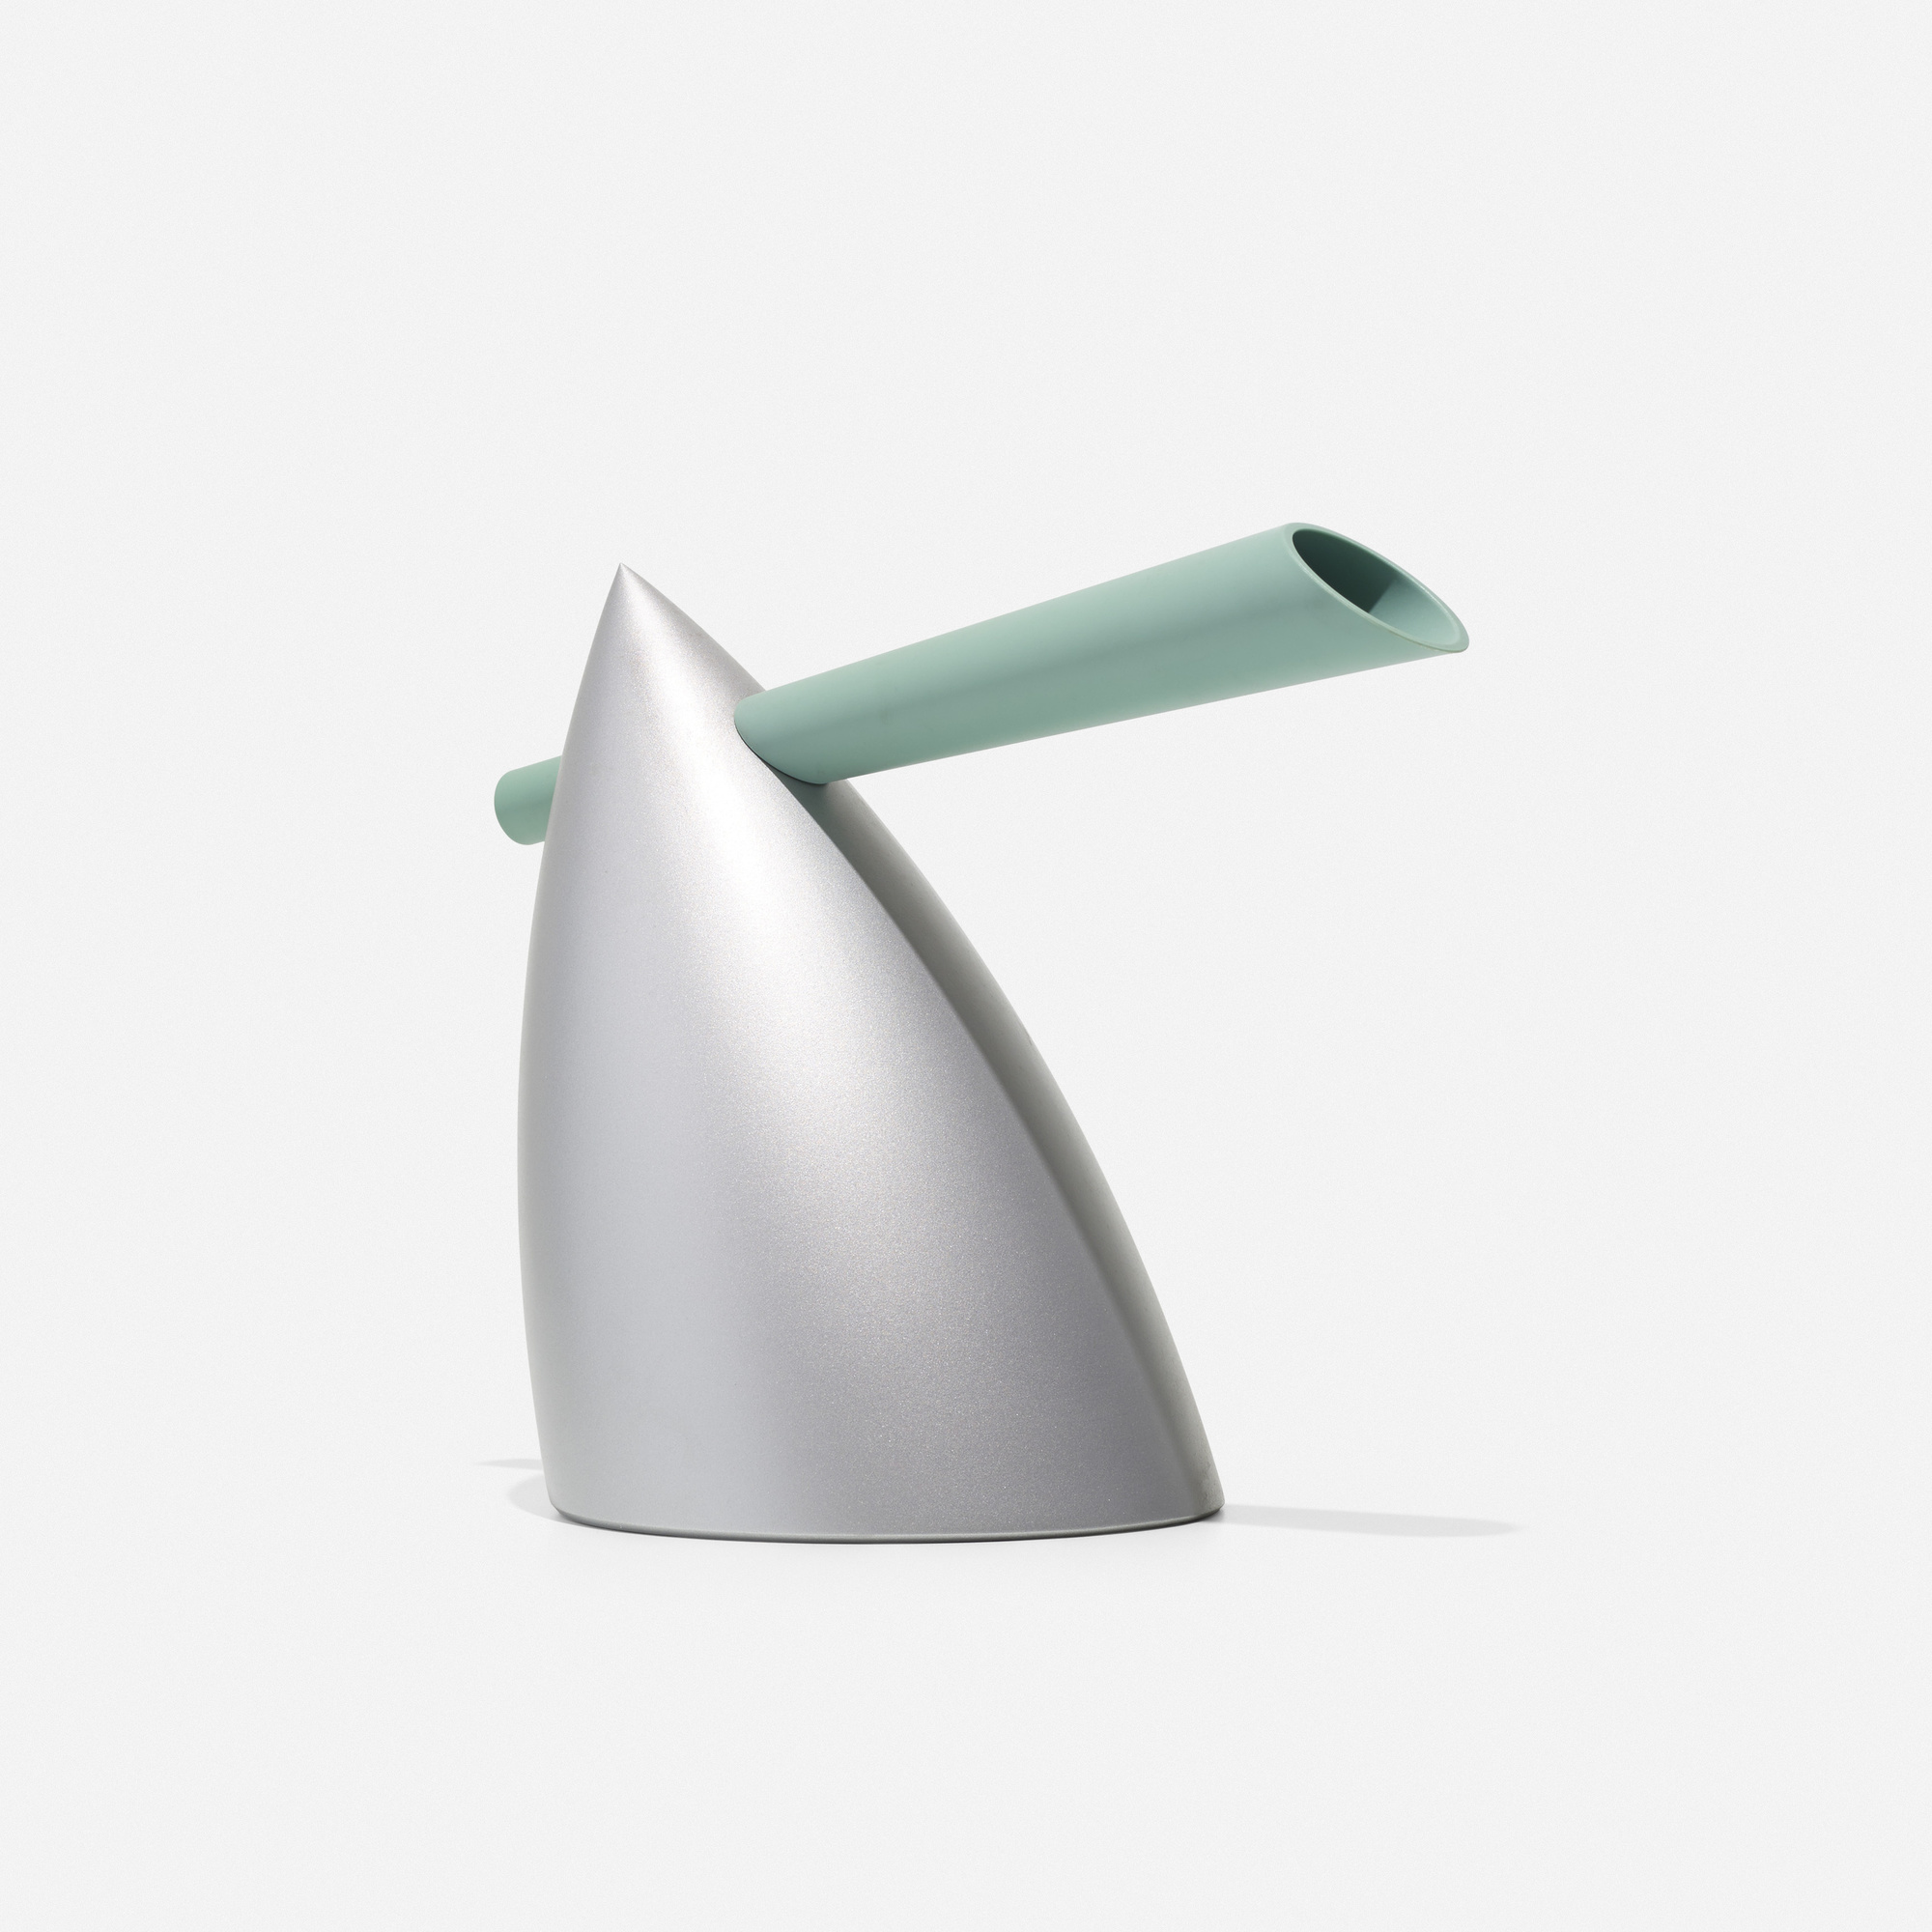 262: Philippe Starck / Hot Berta tea kettle (1 of 1)